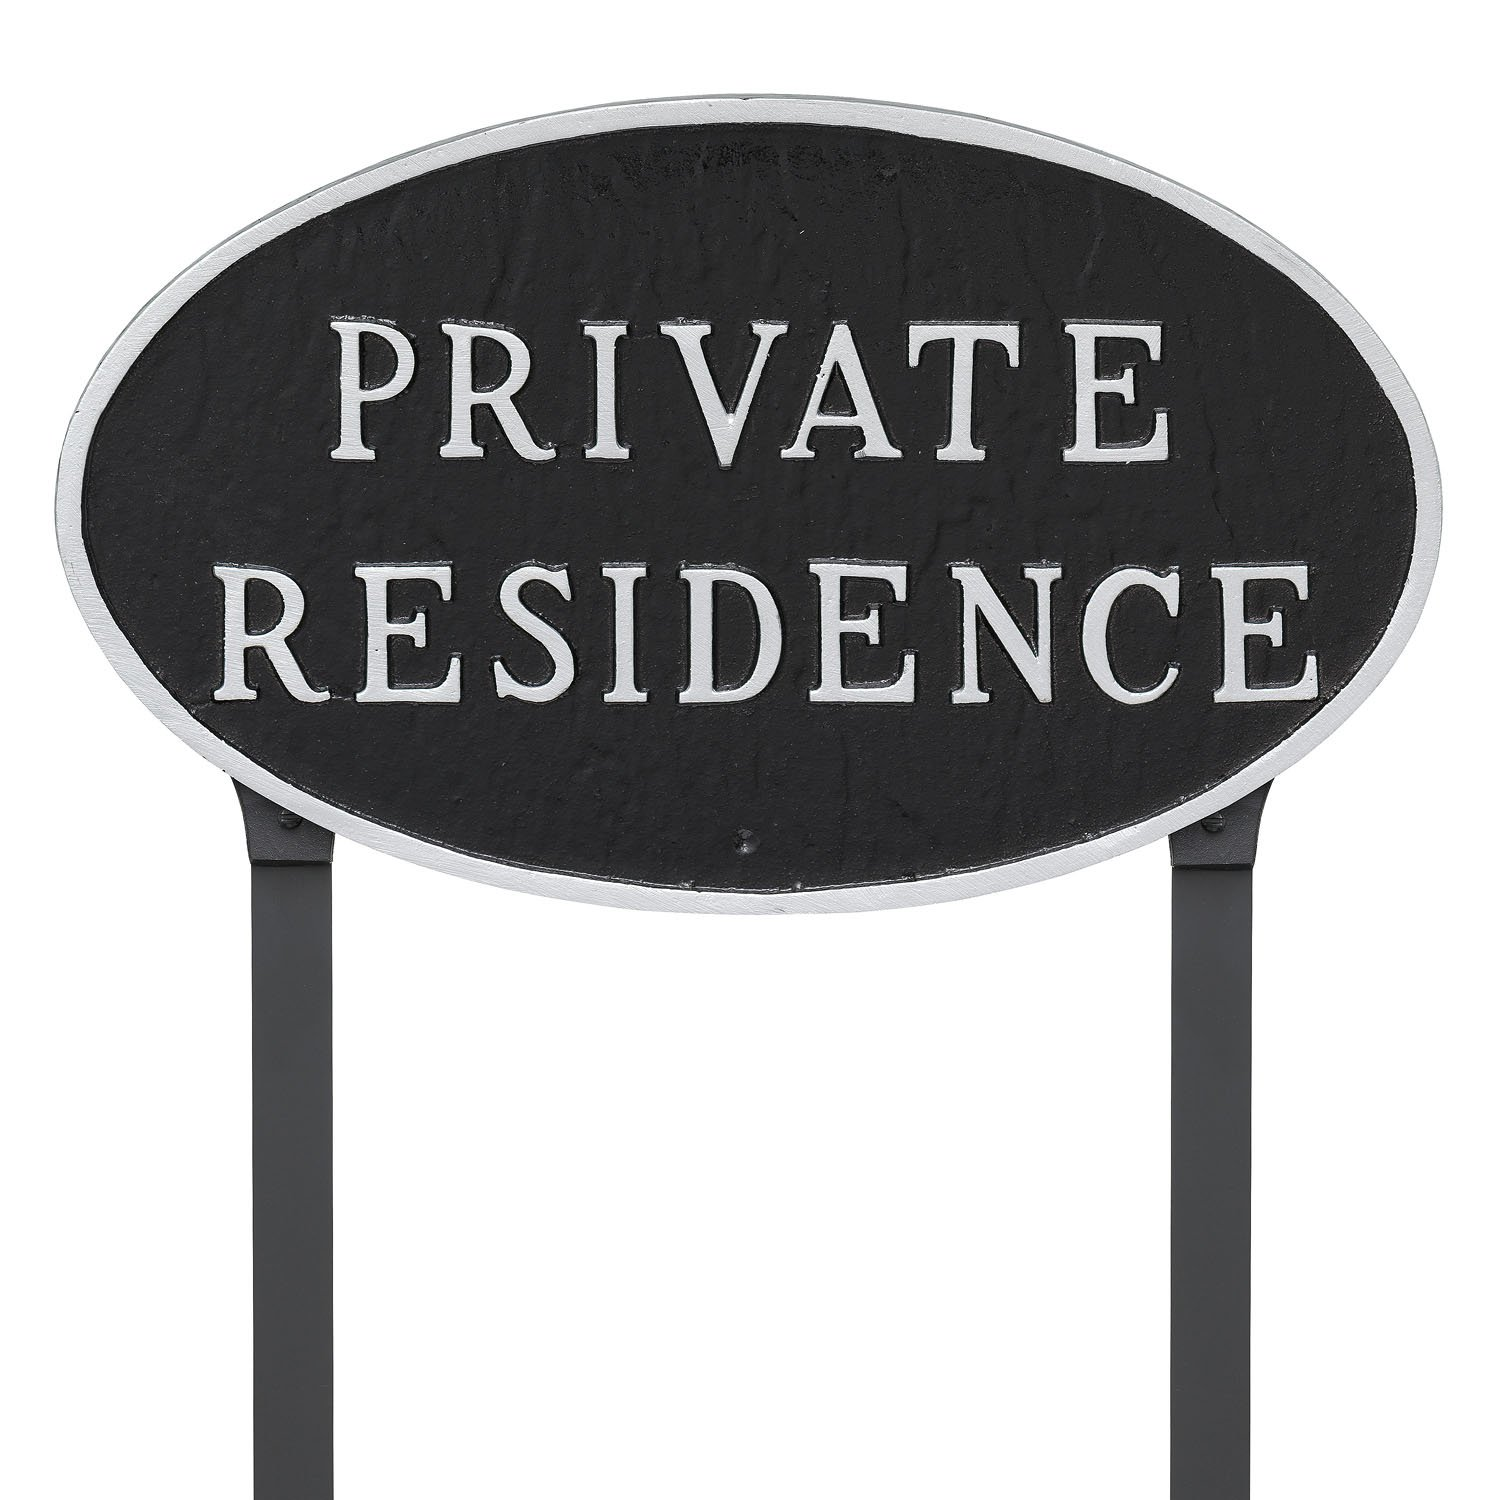 Montague Metal Products 10'' x 18'' Oval Private Residence Statement Plaque with 23'' Lawn Stake, Black/Silver